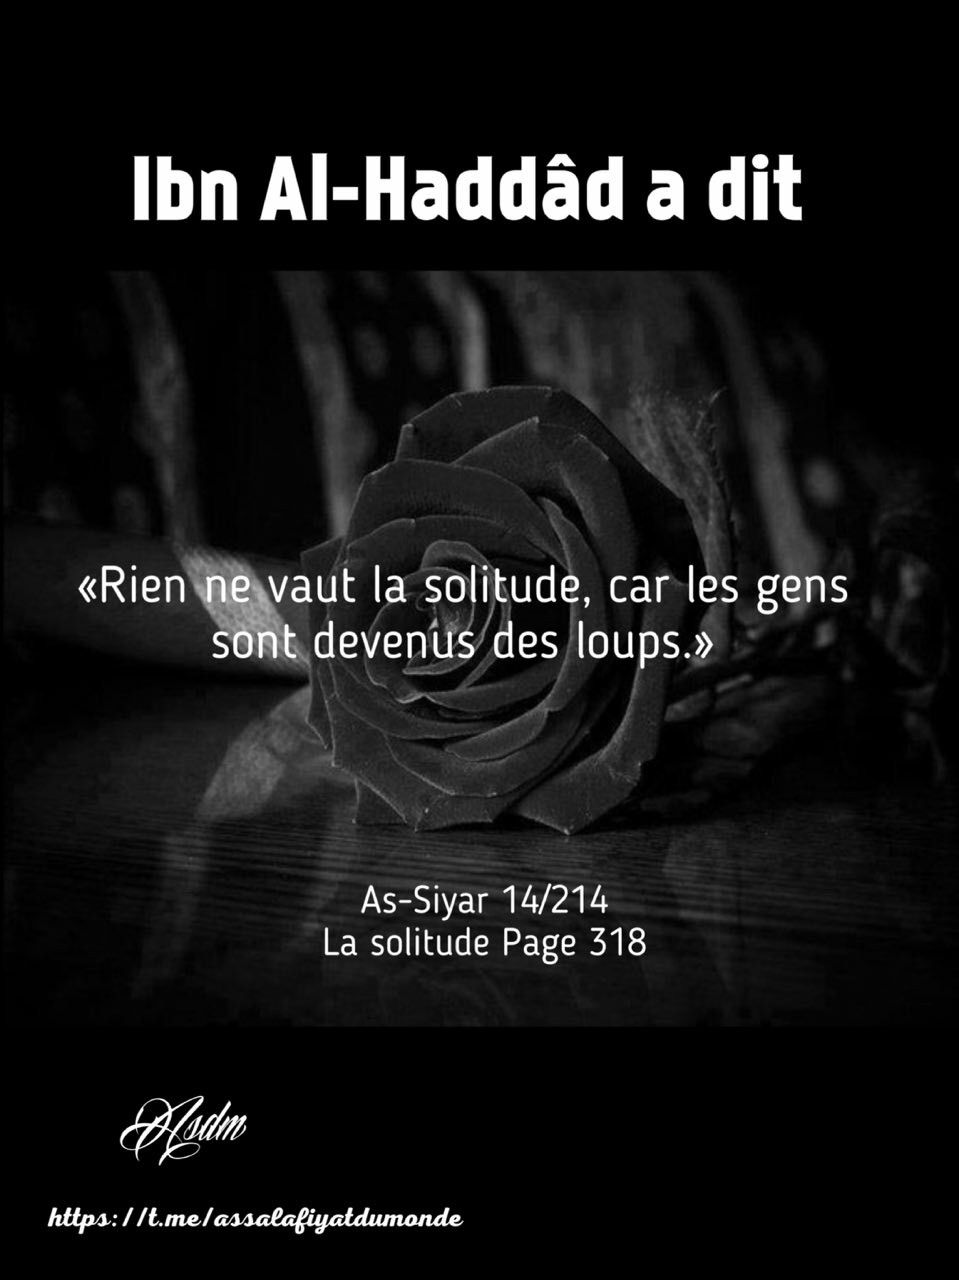 Exceptionnel La solitude | Best quotes ever | Pinterest | Islam and Allah NM64